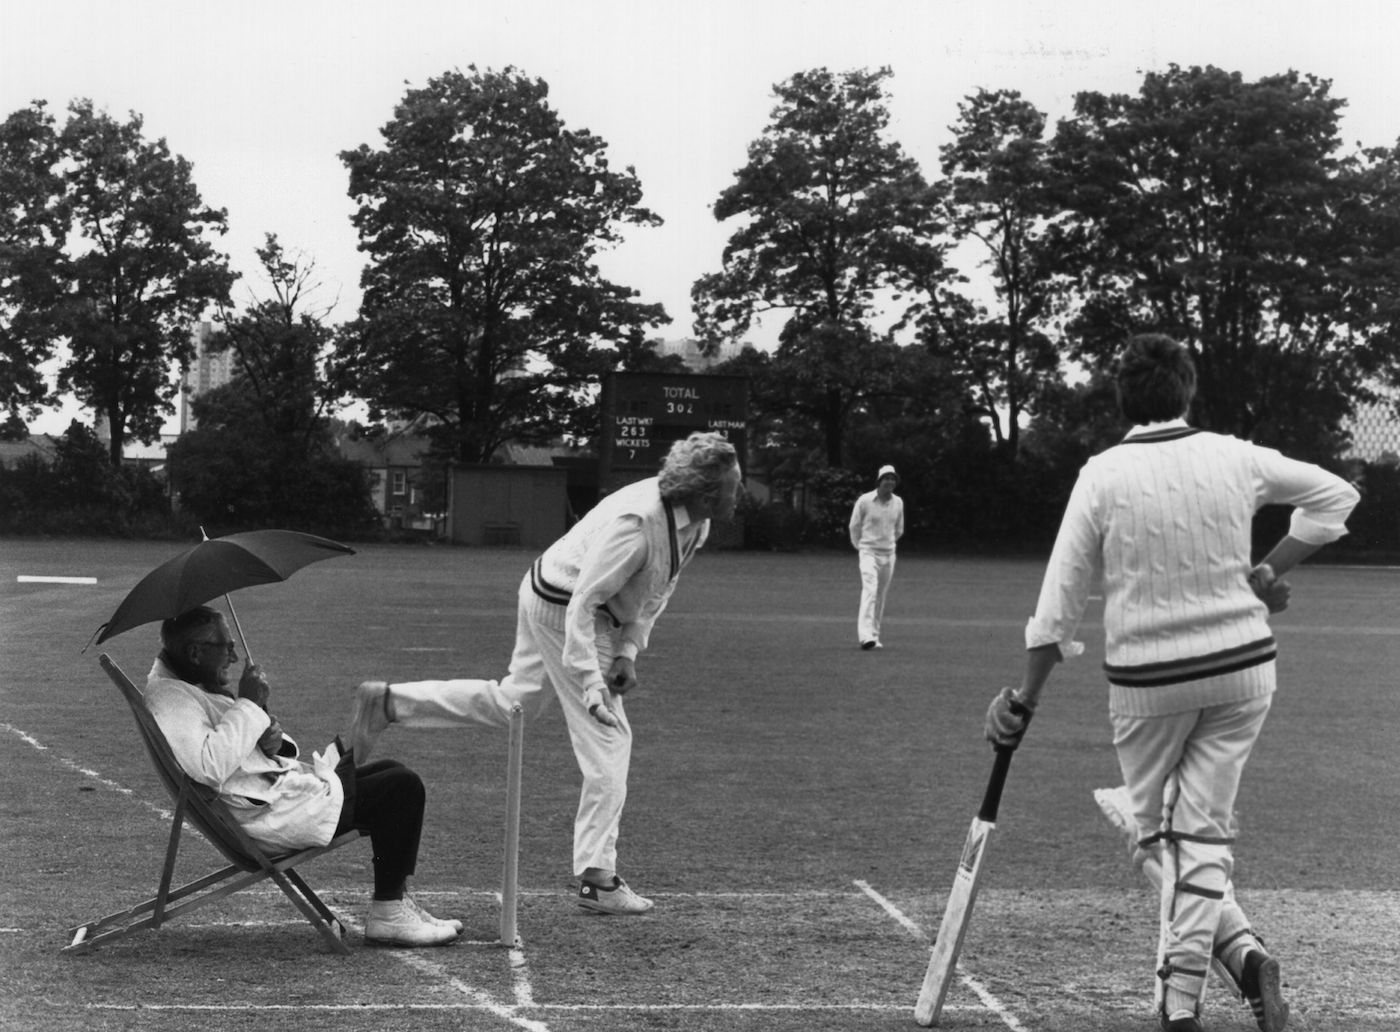 You'll go off for rain when umpire Percy Lister says it's time. Right now he can barely feel a drop